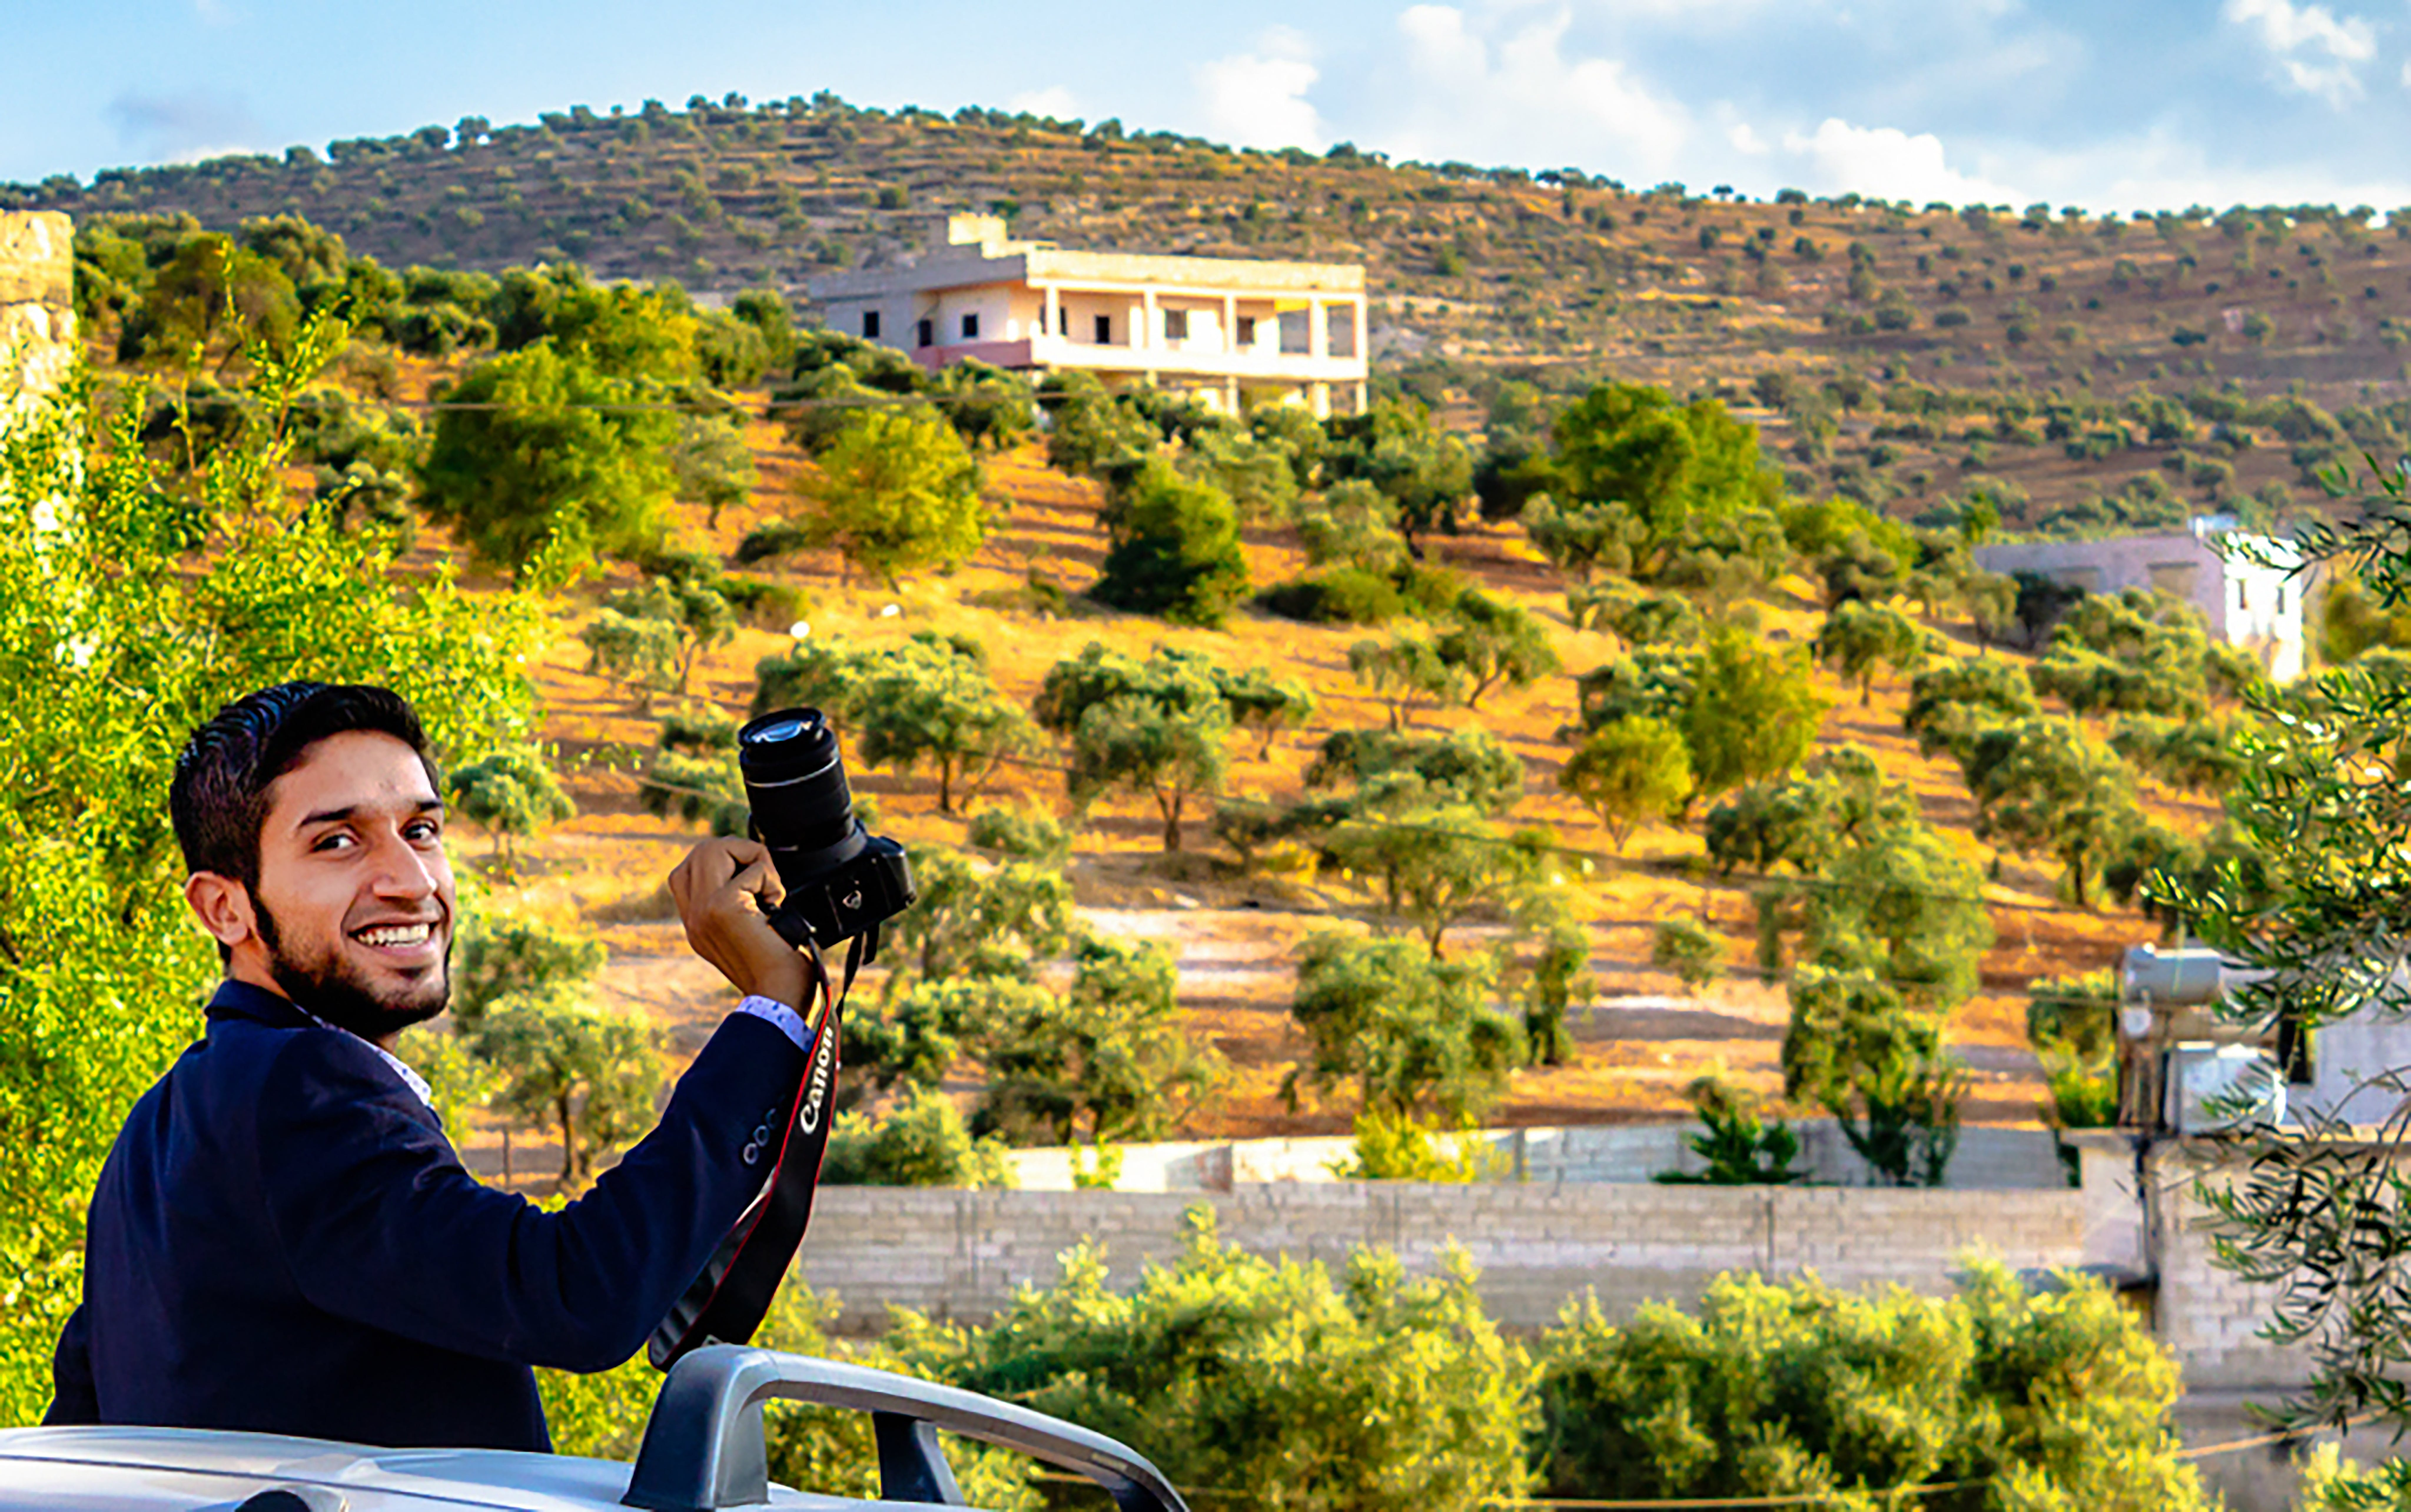 Smiling Man Holding Black Canon Dslr Camera in Front of Trees and Buildings